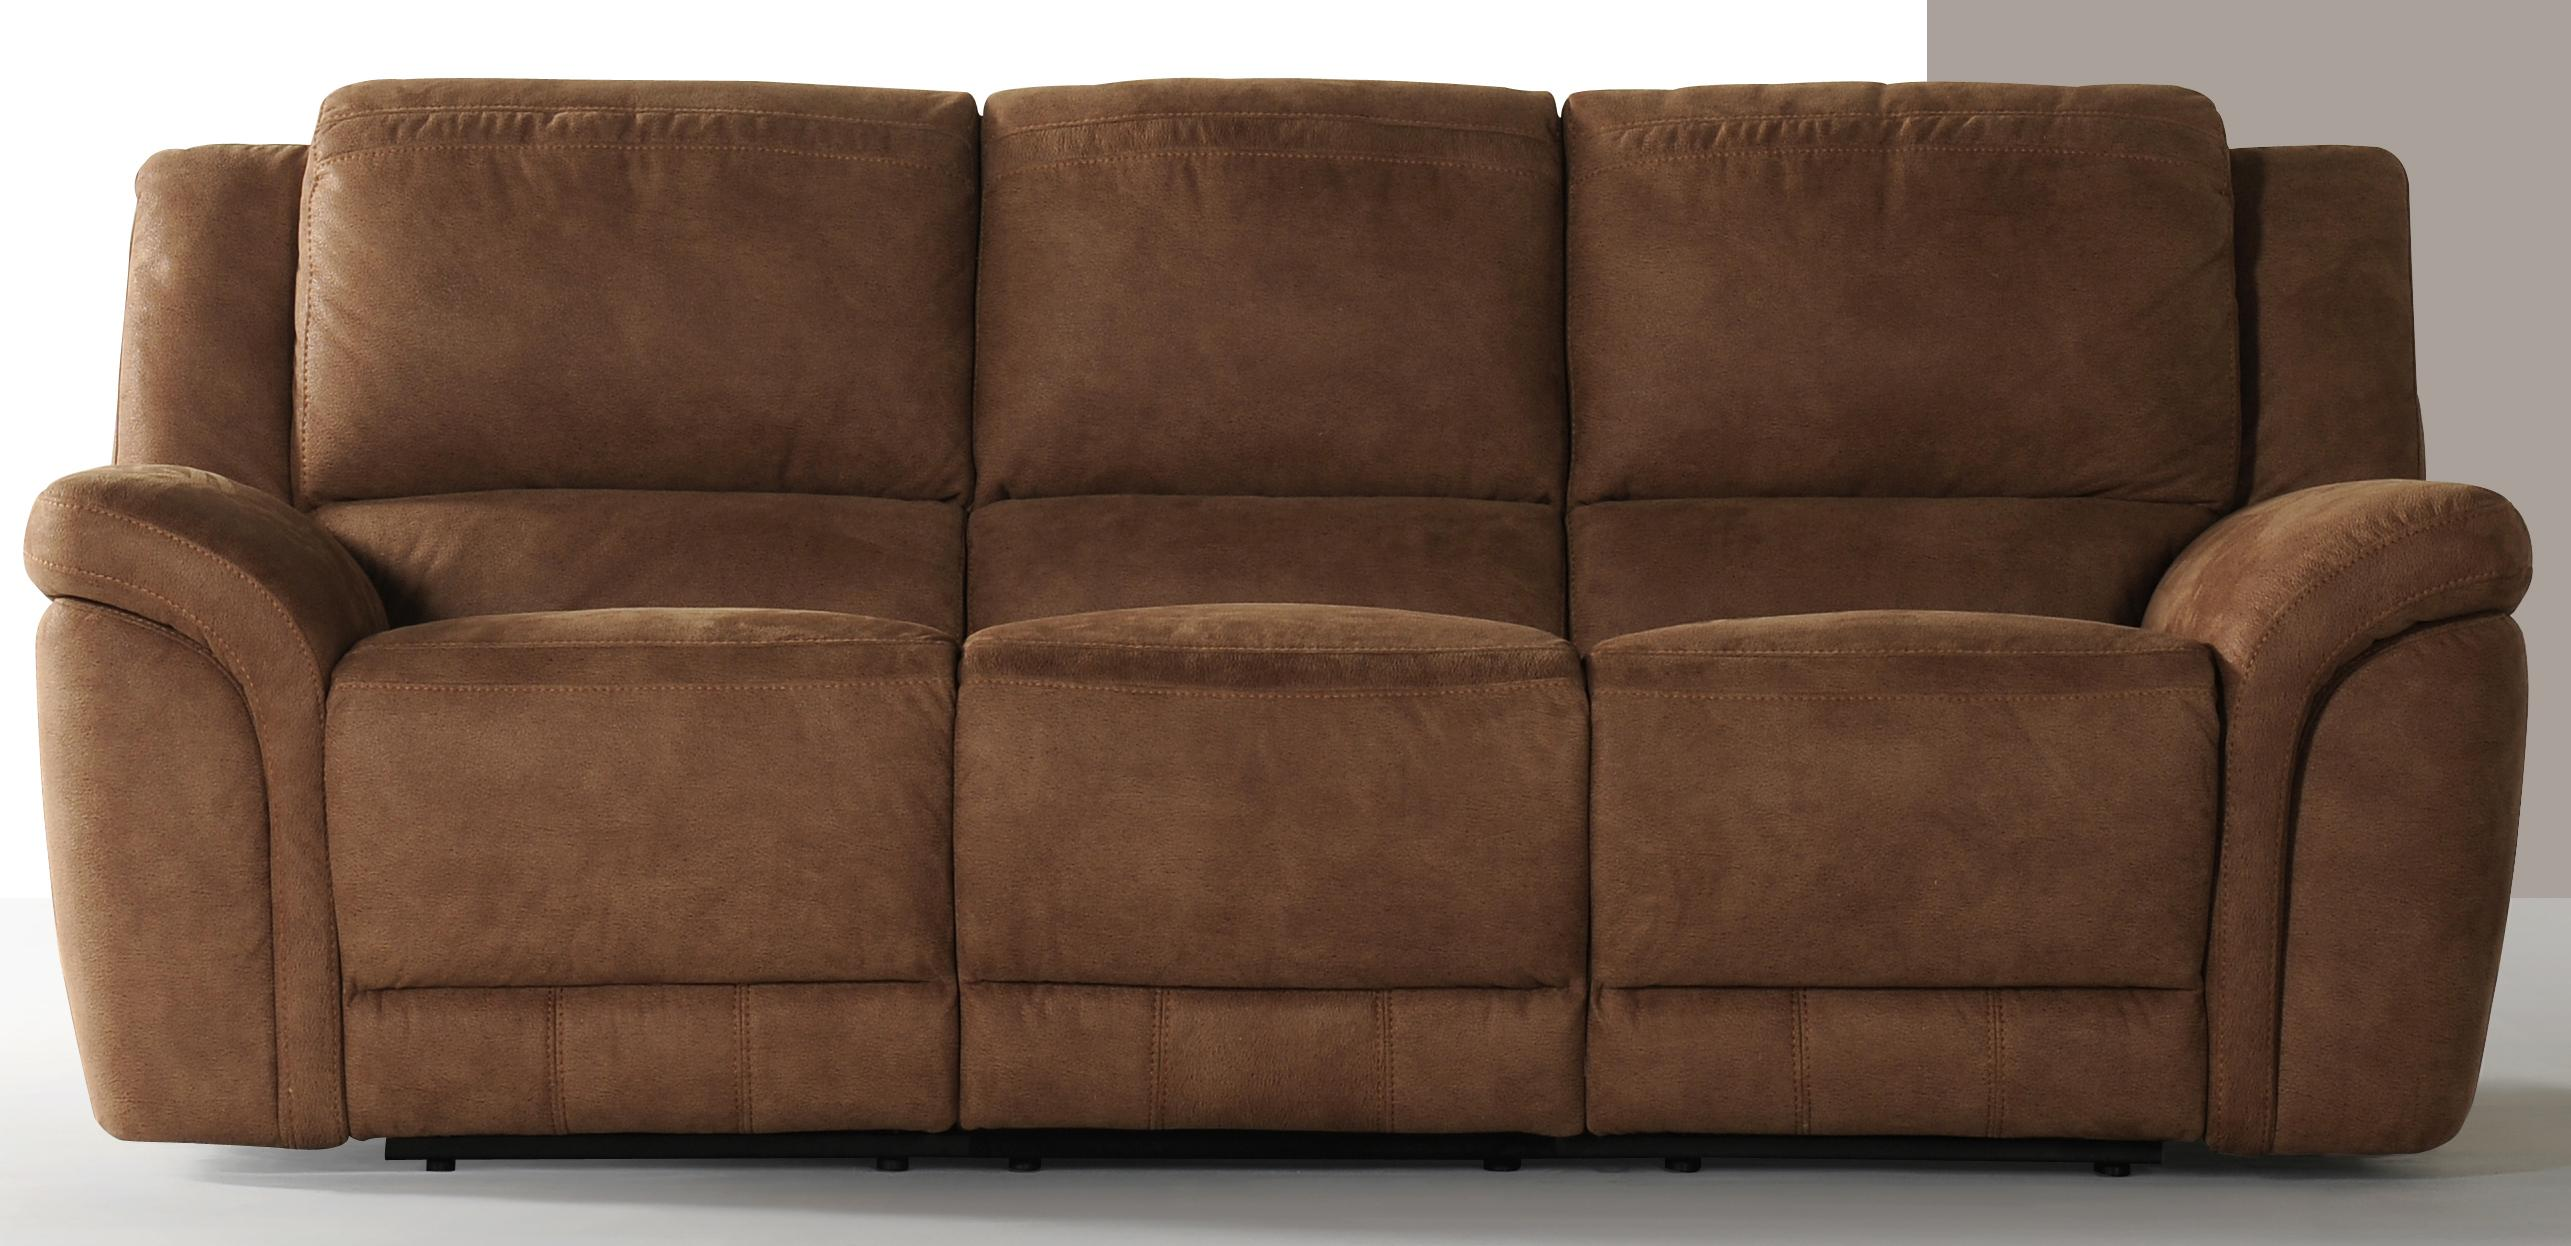 3478RC-FK Reclining Sofa by Violino at Furniture Superstore - Rochester, MN